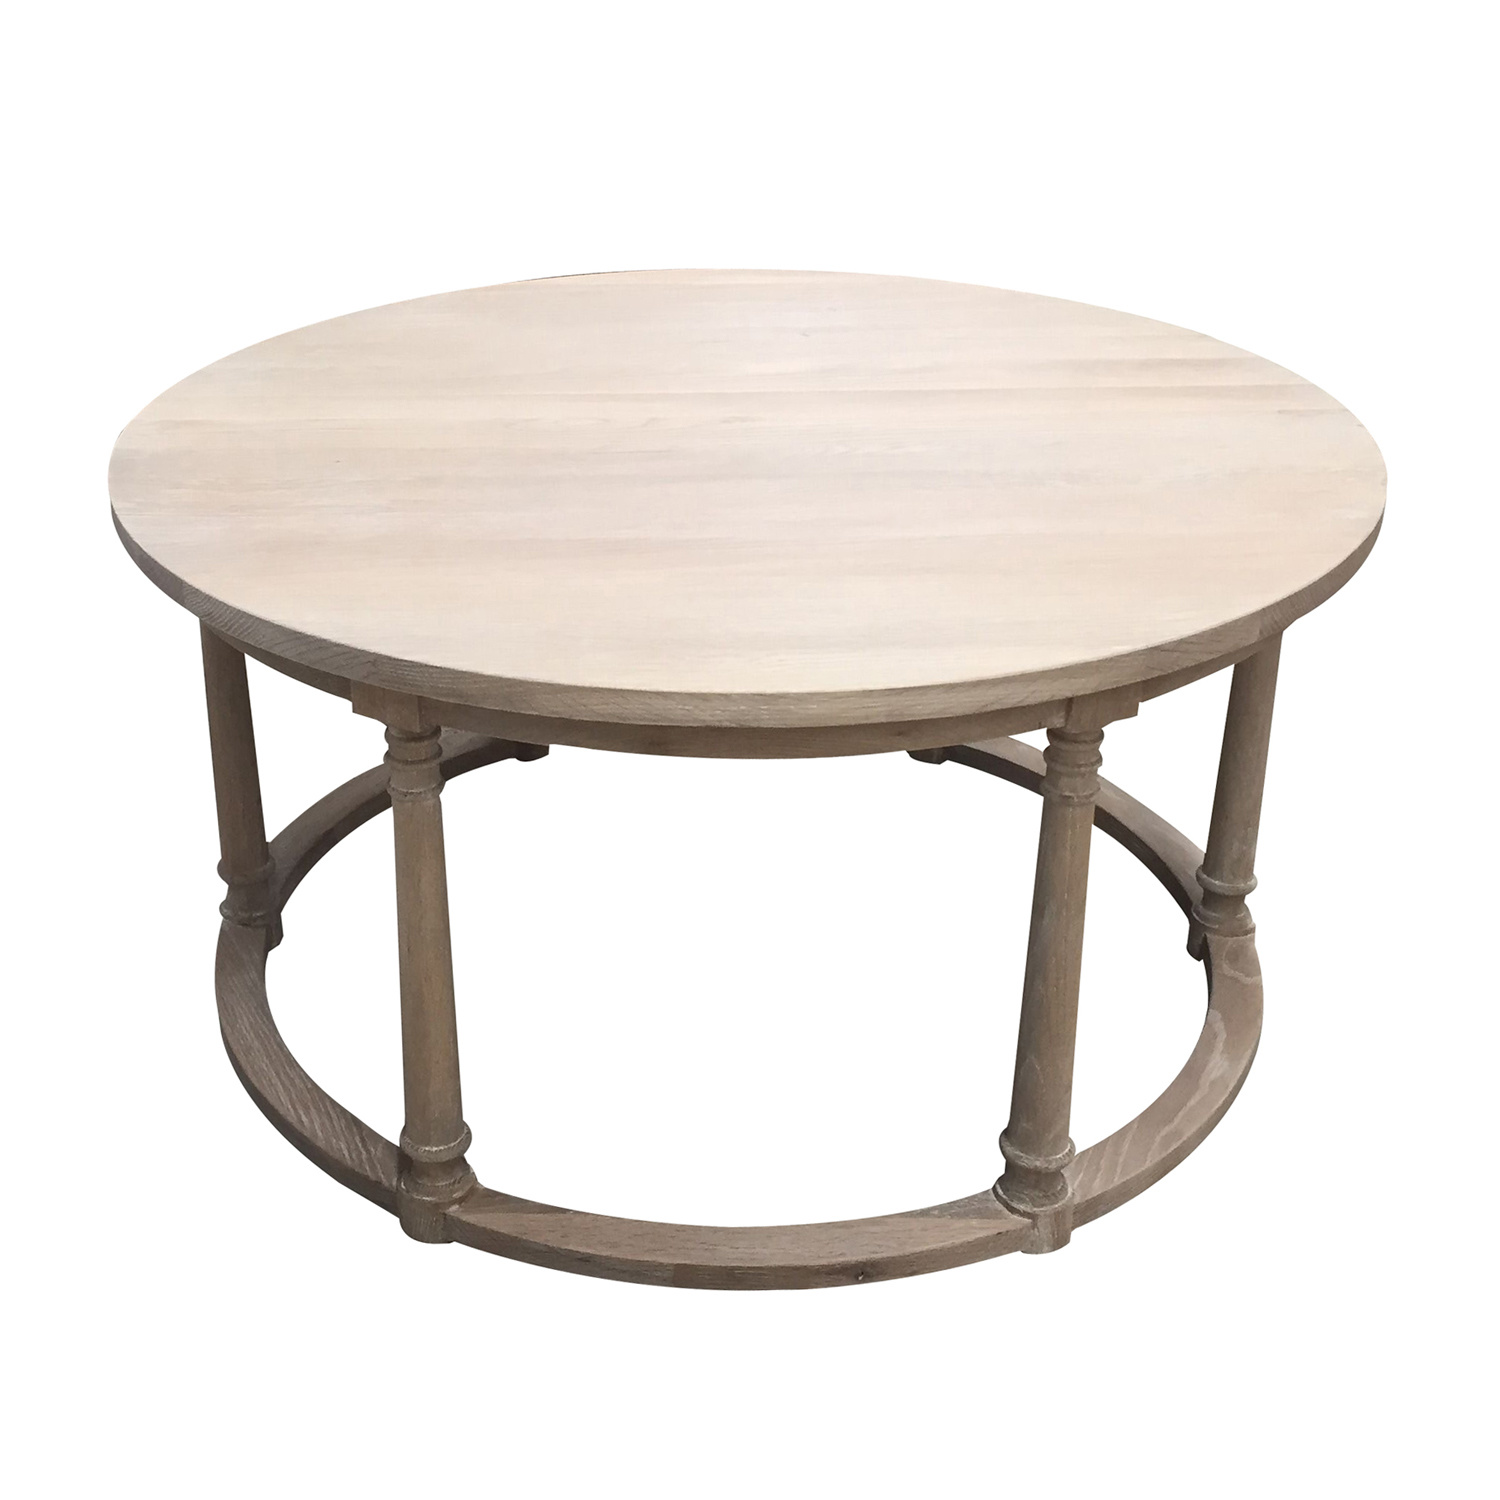 - China Round Washed Oak Top Wooden Coffee Table - China Round Wooden Coffee  Table, Round Oak Coffee Table